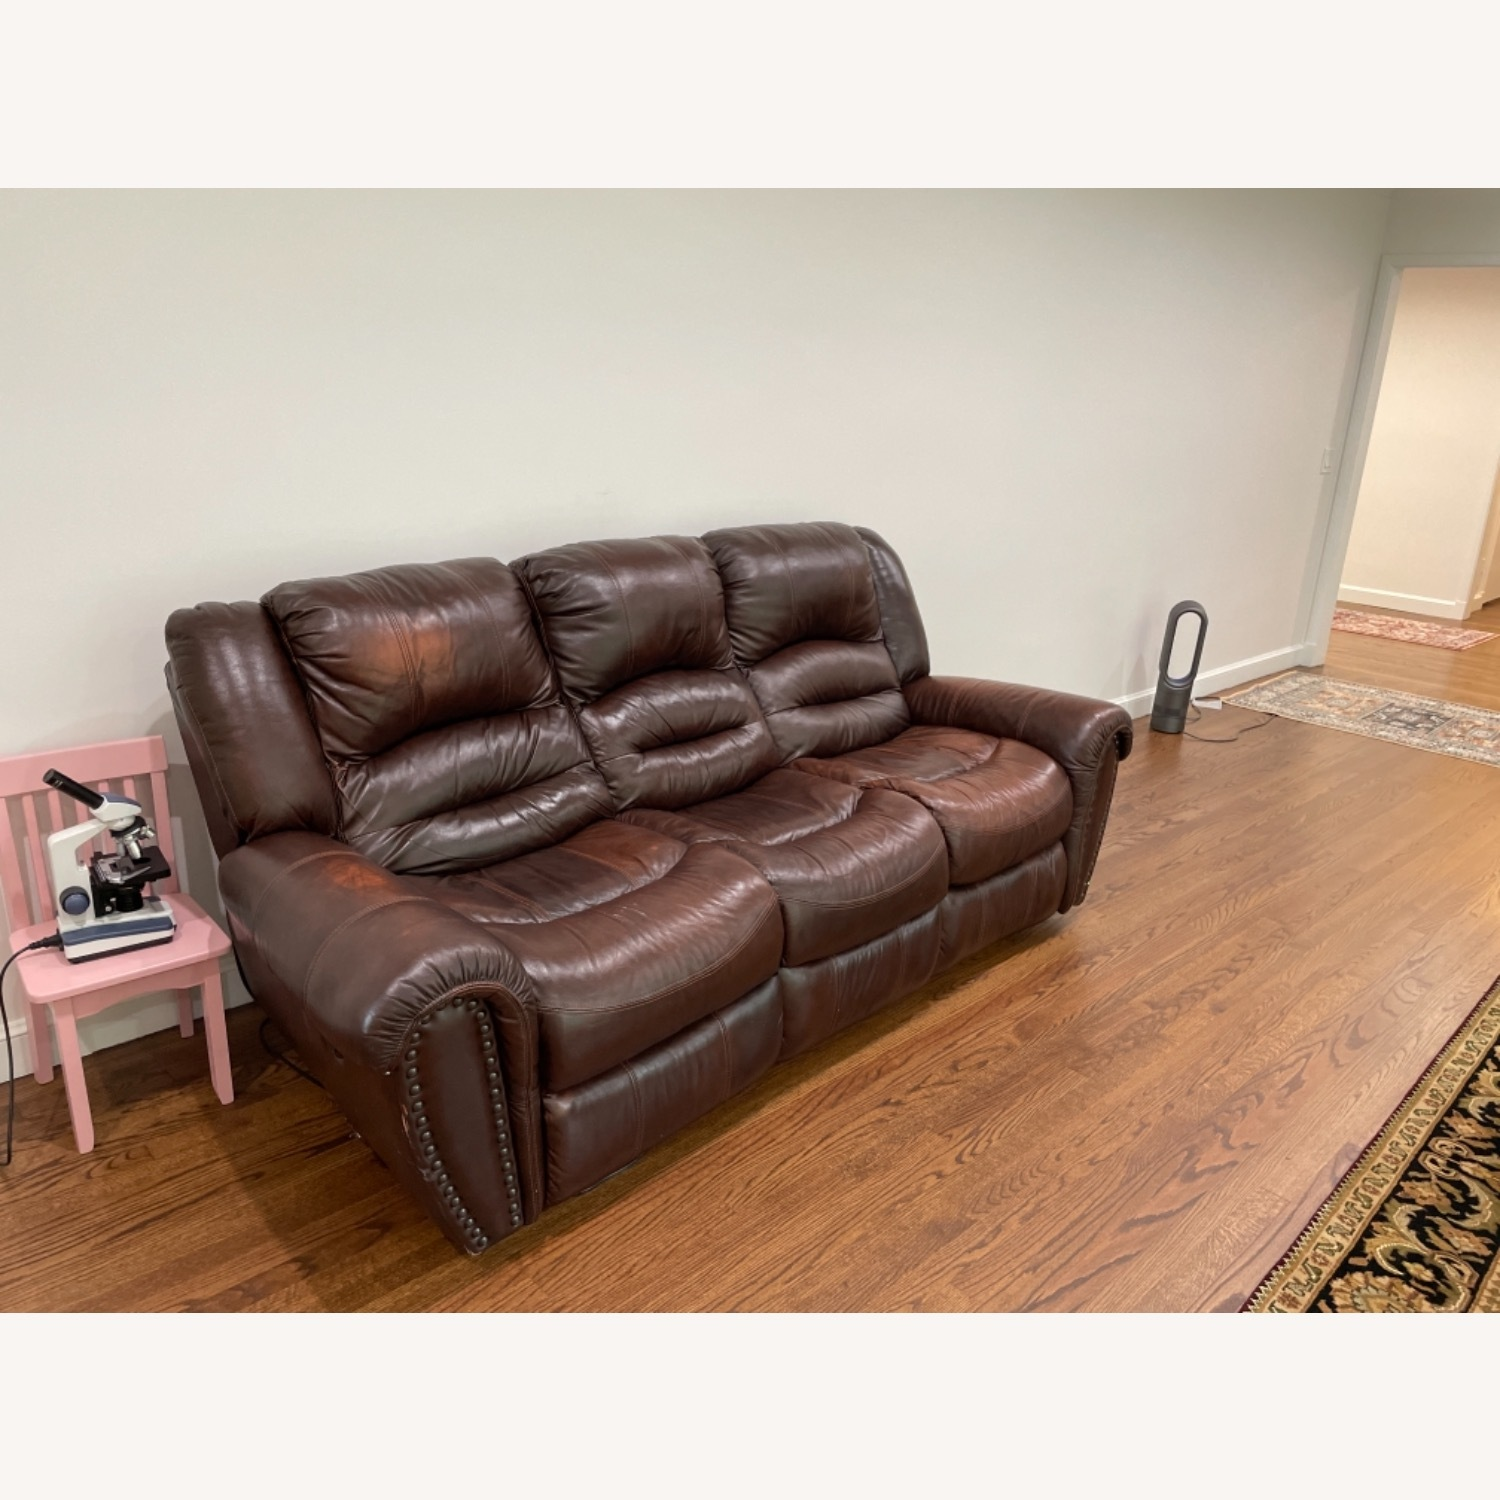 La-Z-Boy 3 Seat Leather Sofa and Recliner - image-2